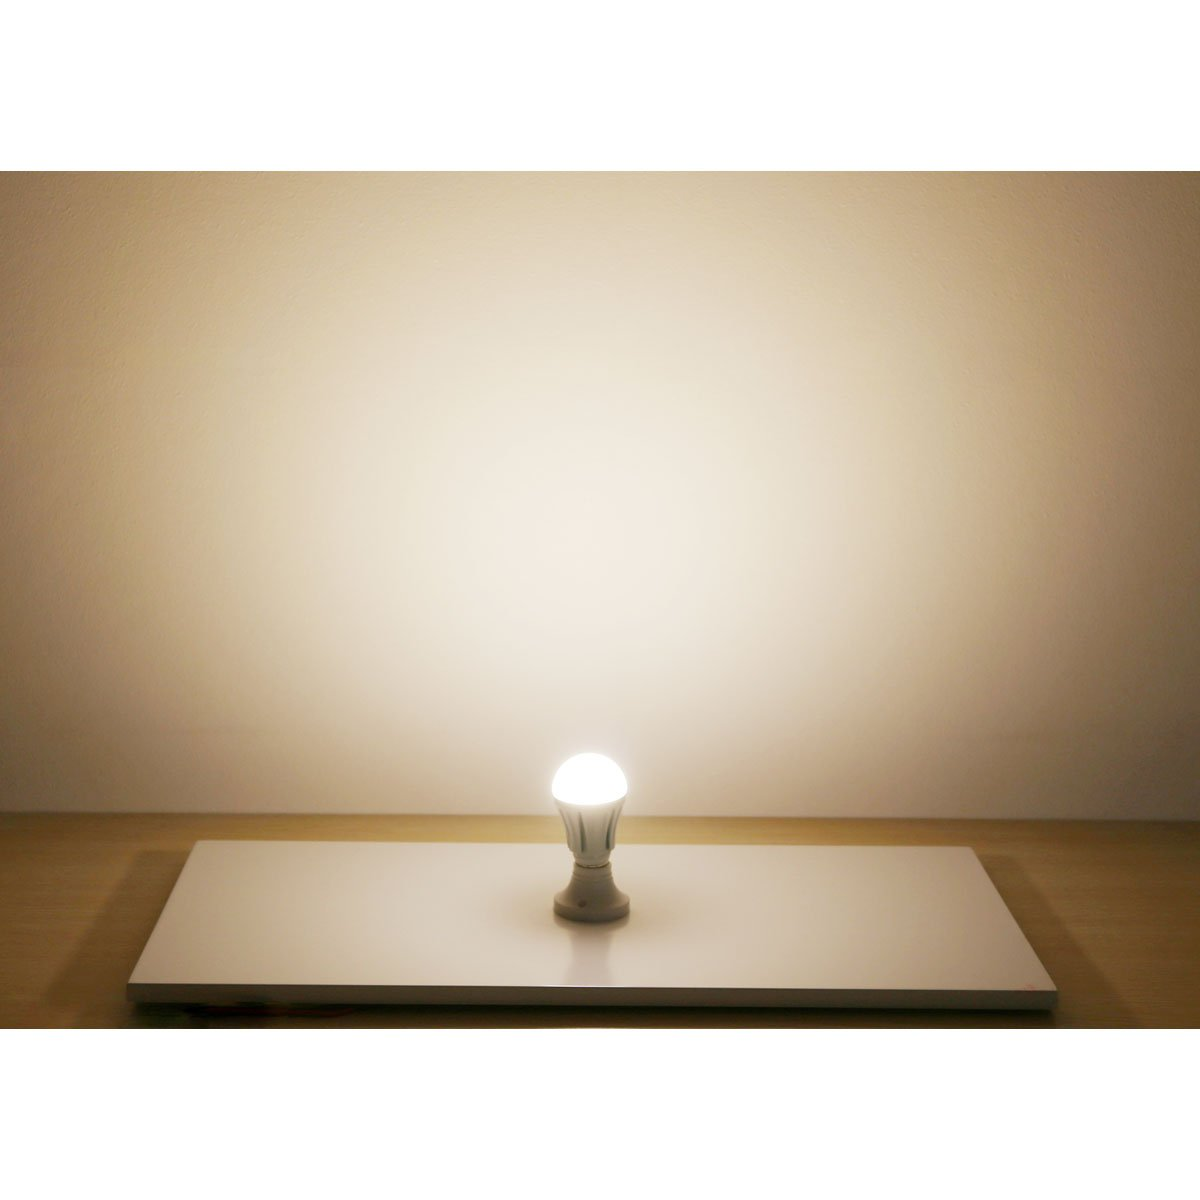 Lighting ever® ampoule led de type a60 de 10w, samsung led, plus ...